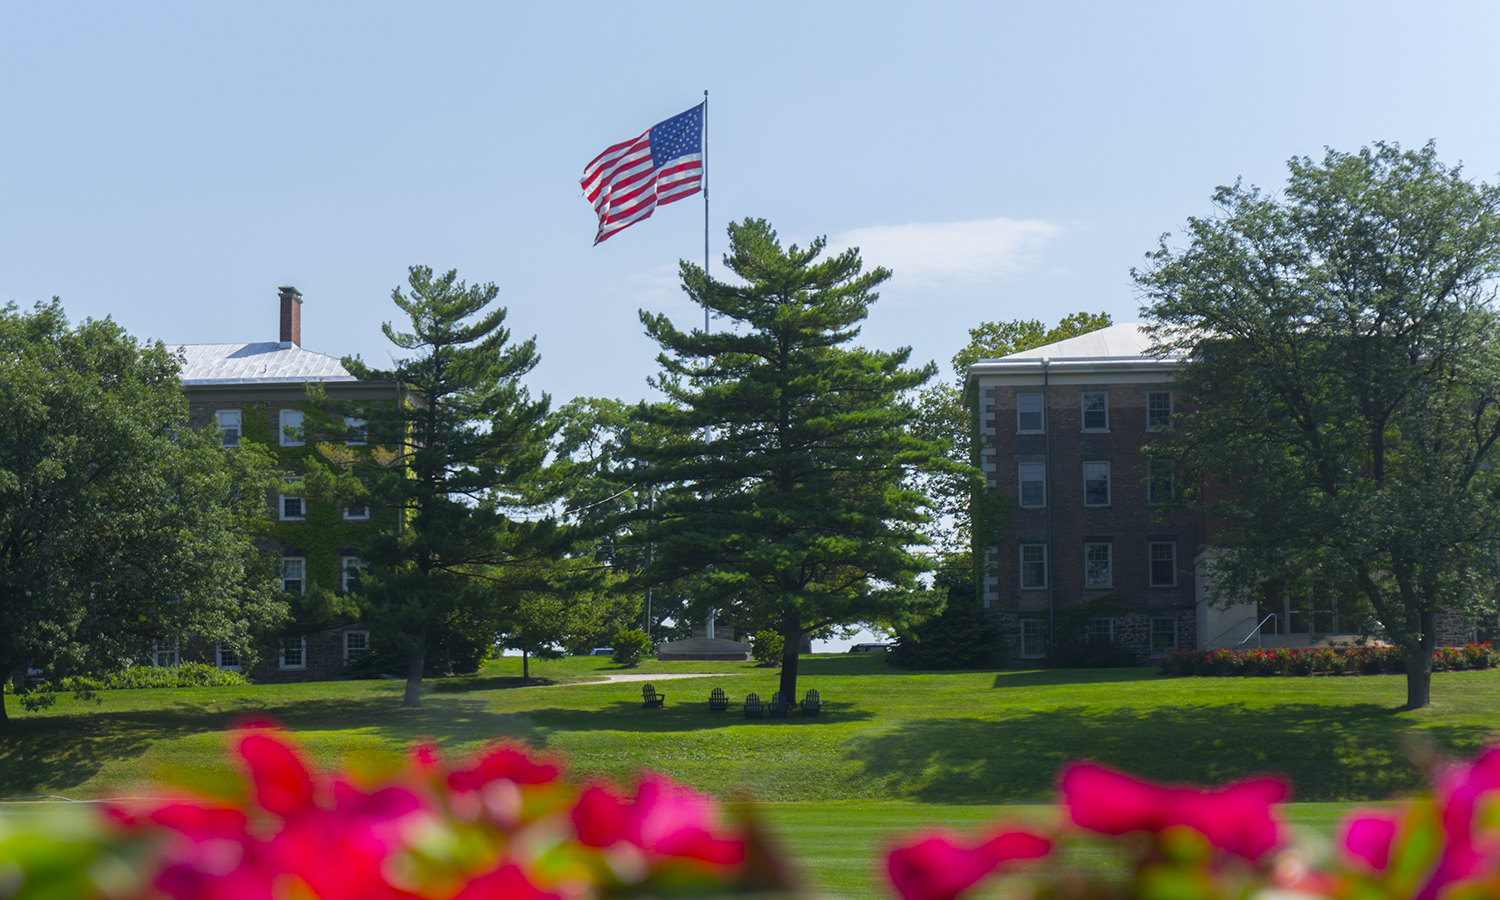 The American flag flies over the Quad.